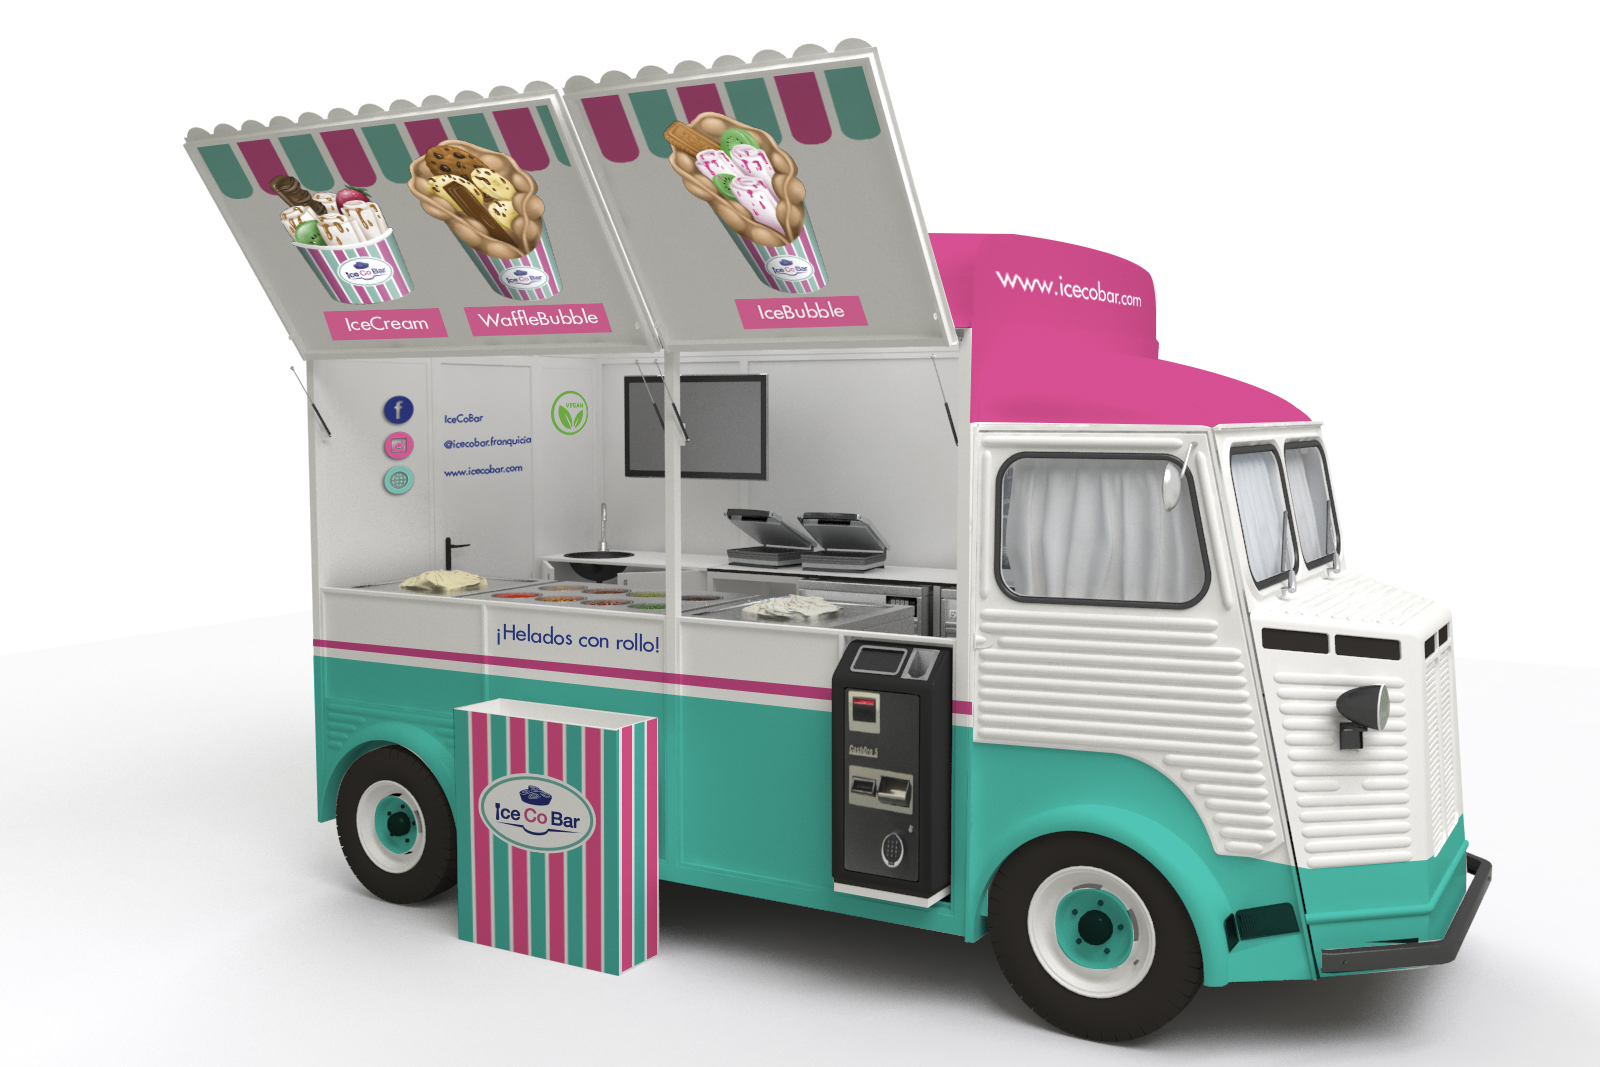 IceCoBar Fooftruck (vista interior)